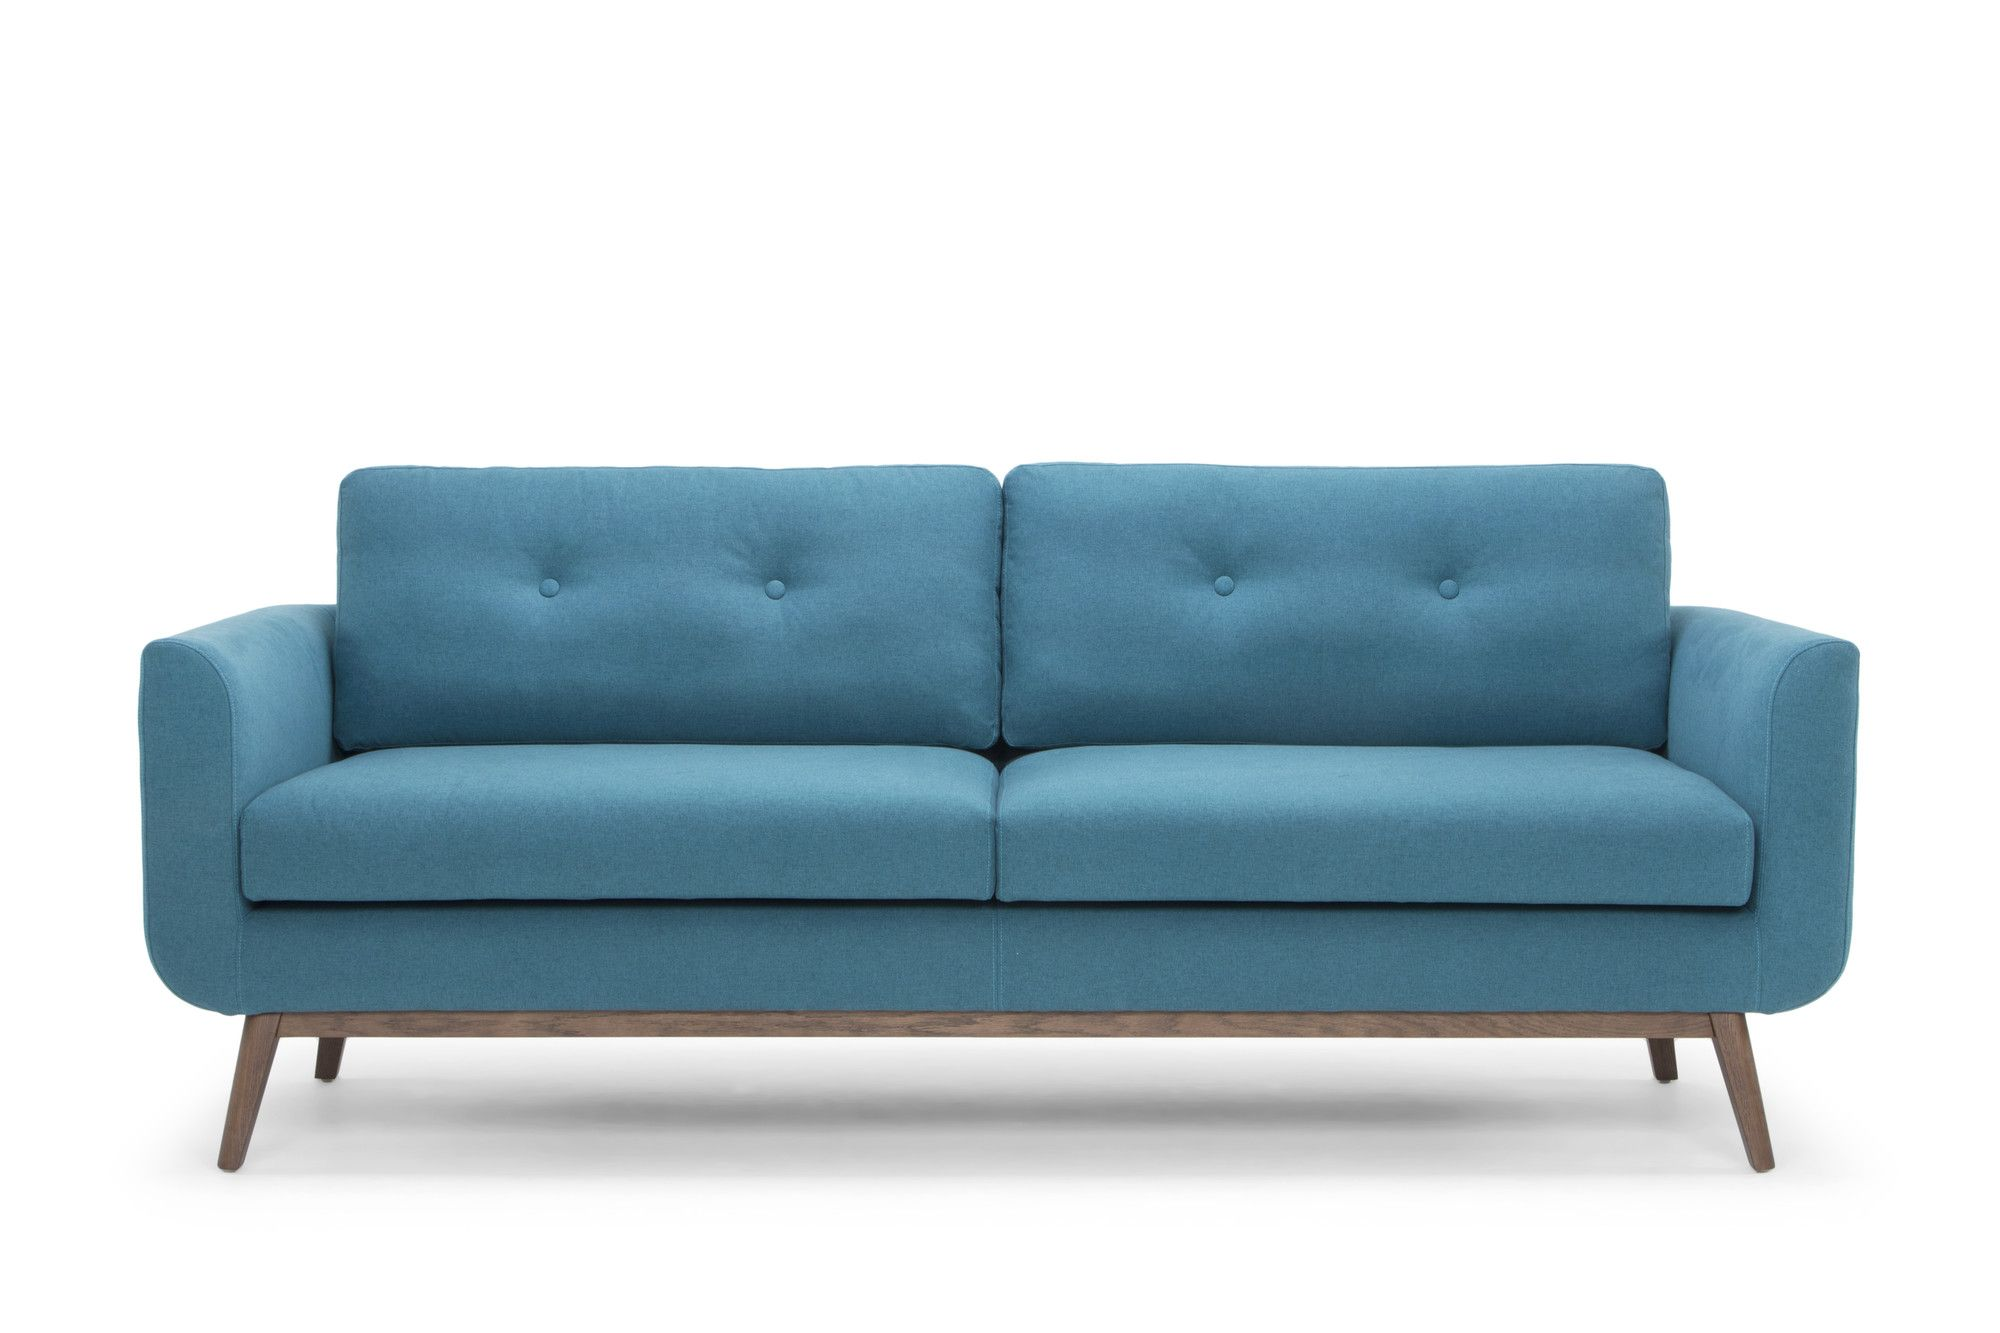 Couches That Turn Into Beds